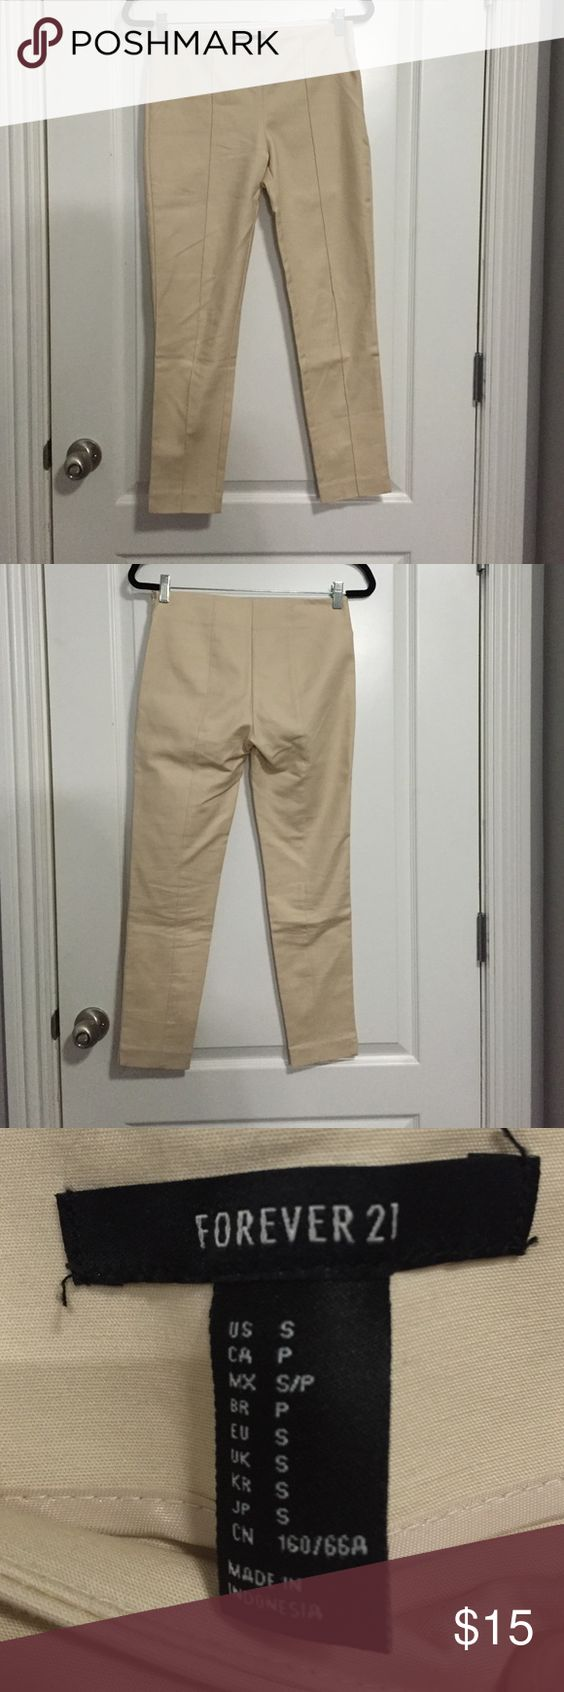 Cream work trousers Perfect work pants. Size small from Forever 21. Never worn. Has side zipper and no pockets. Seams down front and back of legs. Forever 21 Pants Trousers